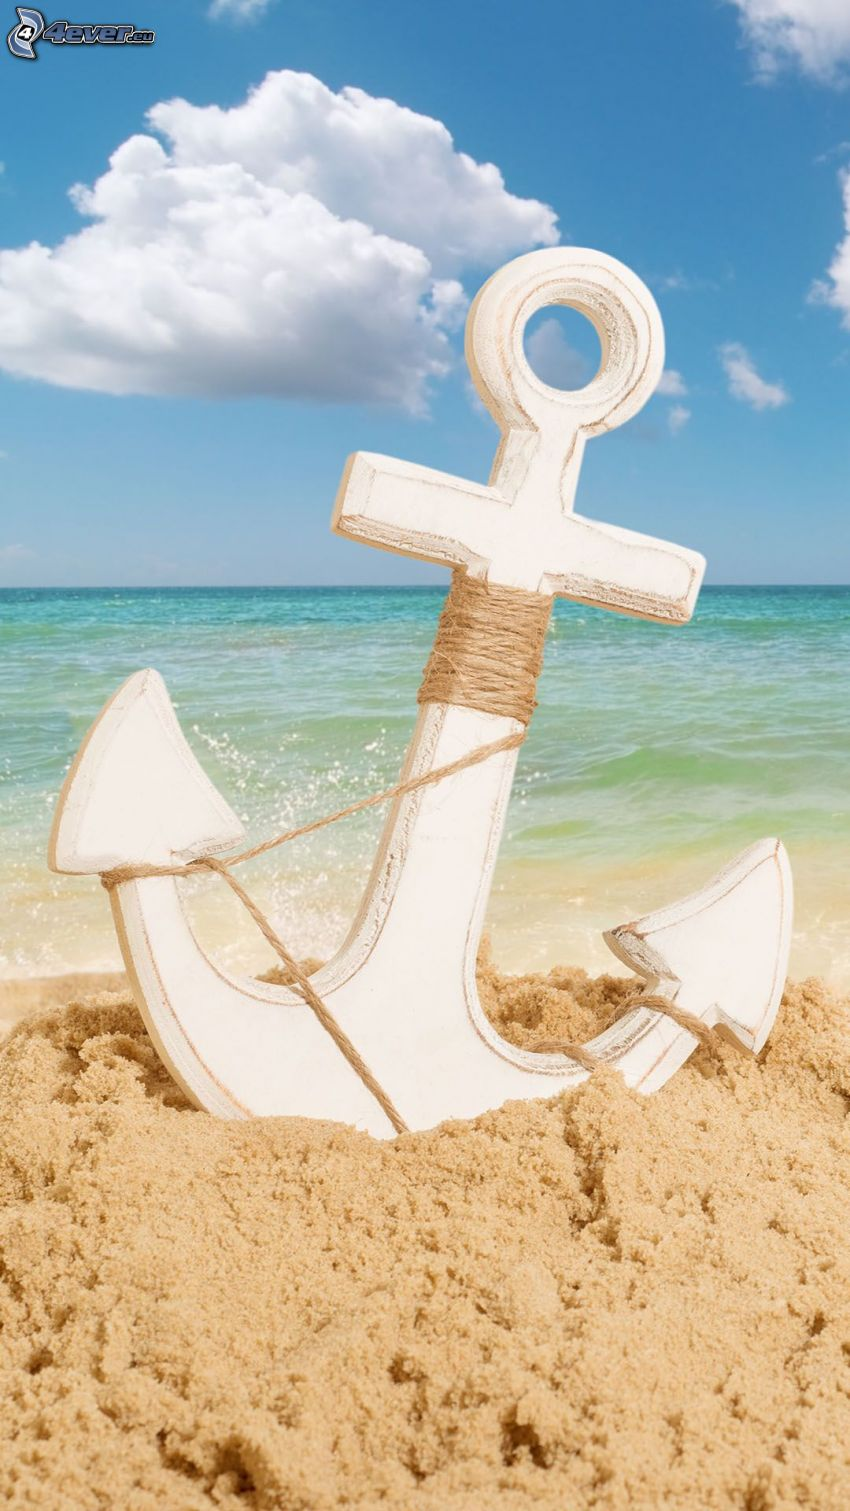 anchor, sand, open sea, clouds